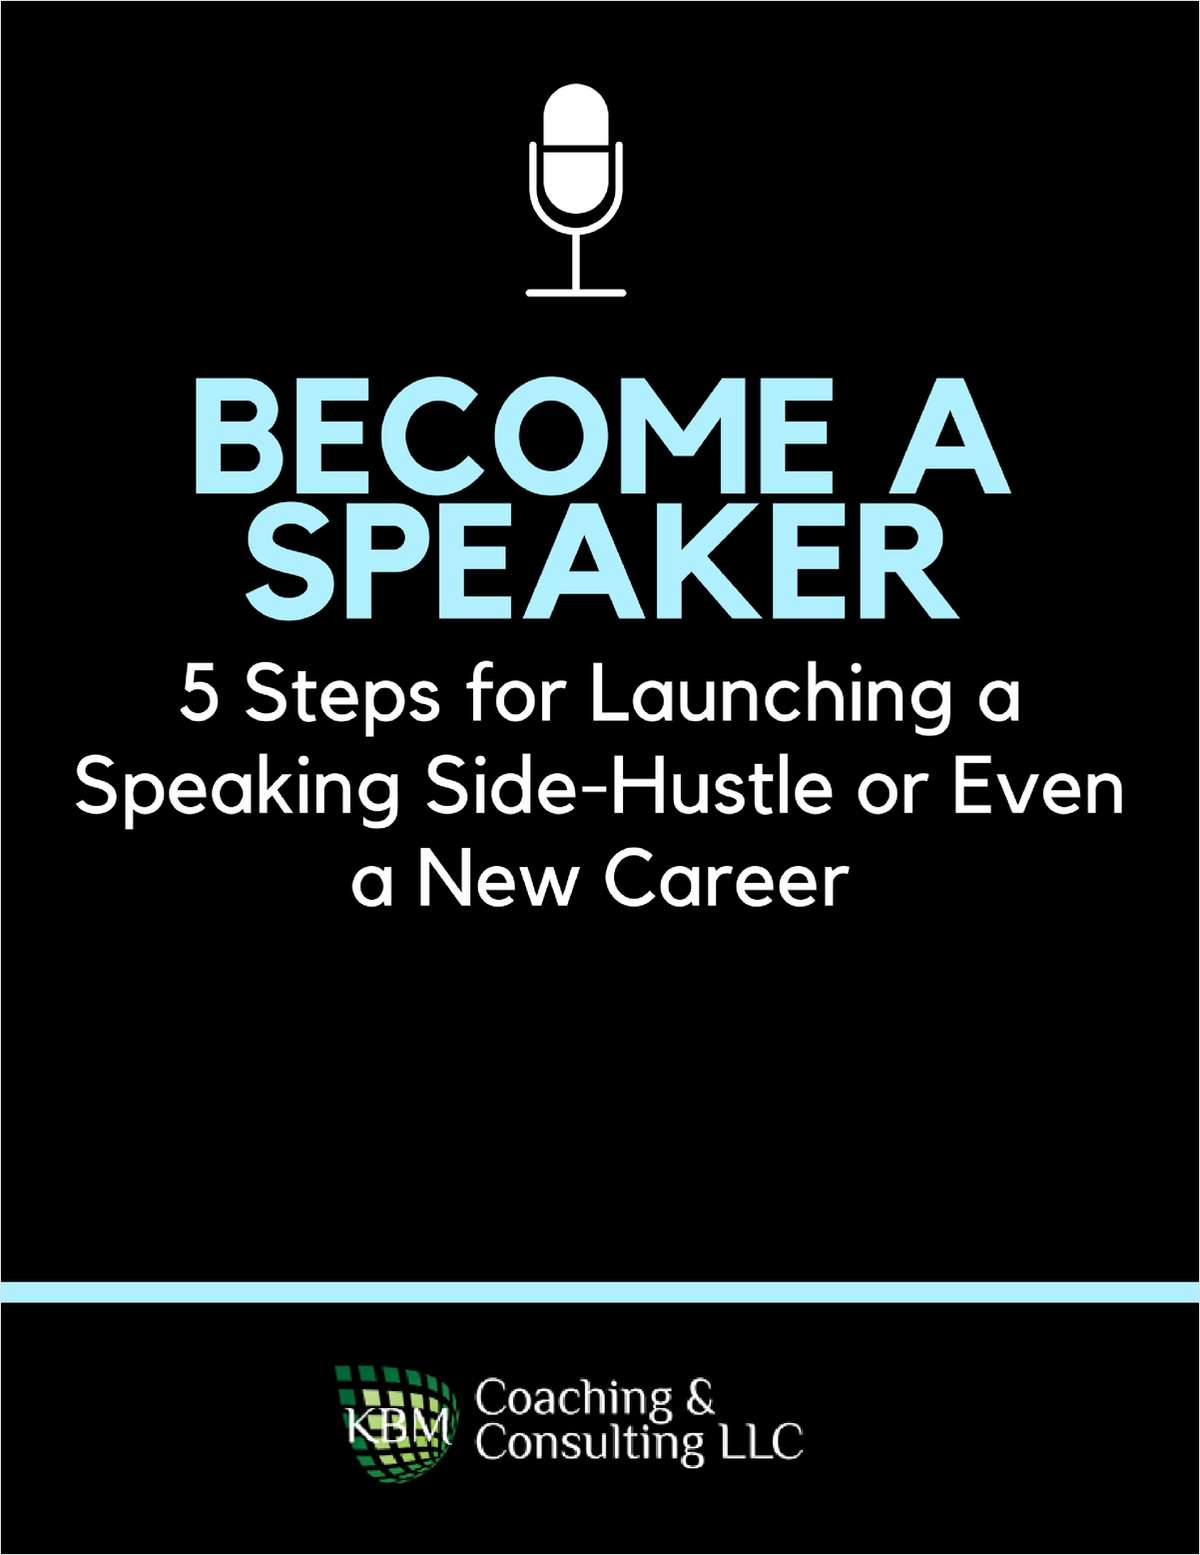 Become a Speaker - 5 Steps for Launching a Speaking Side-Hustle or Even a New Career